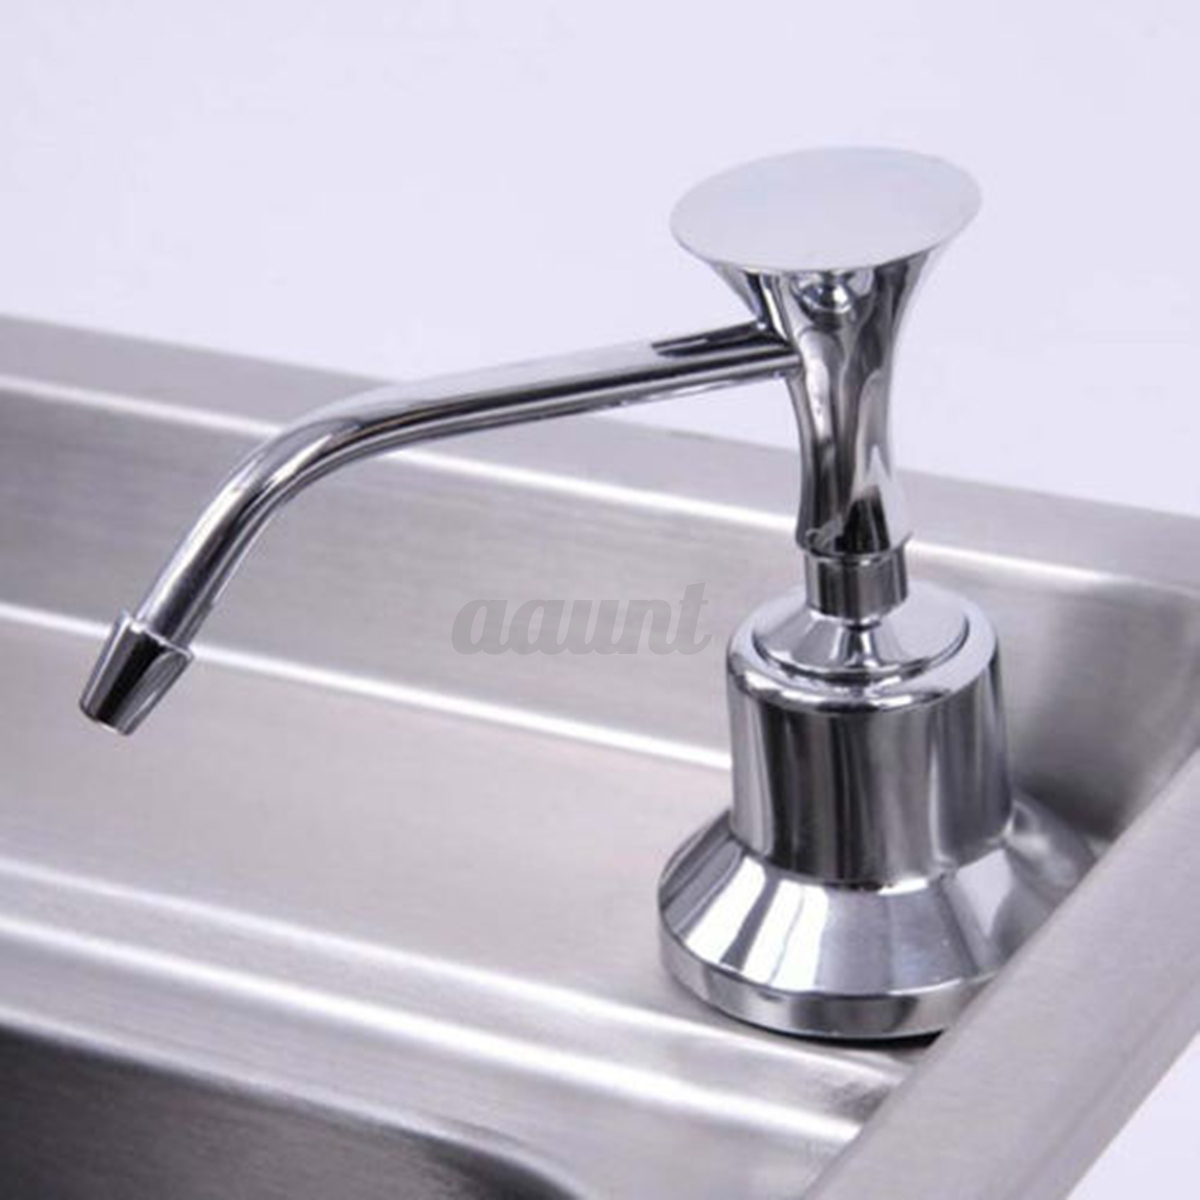 kitchen sink soap dispenser bottle cost to replace cabinets 220ml white chrome liquid bathroom